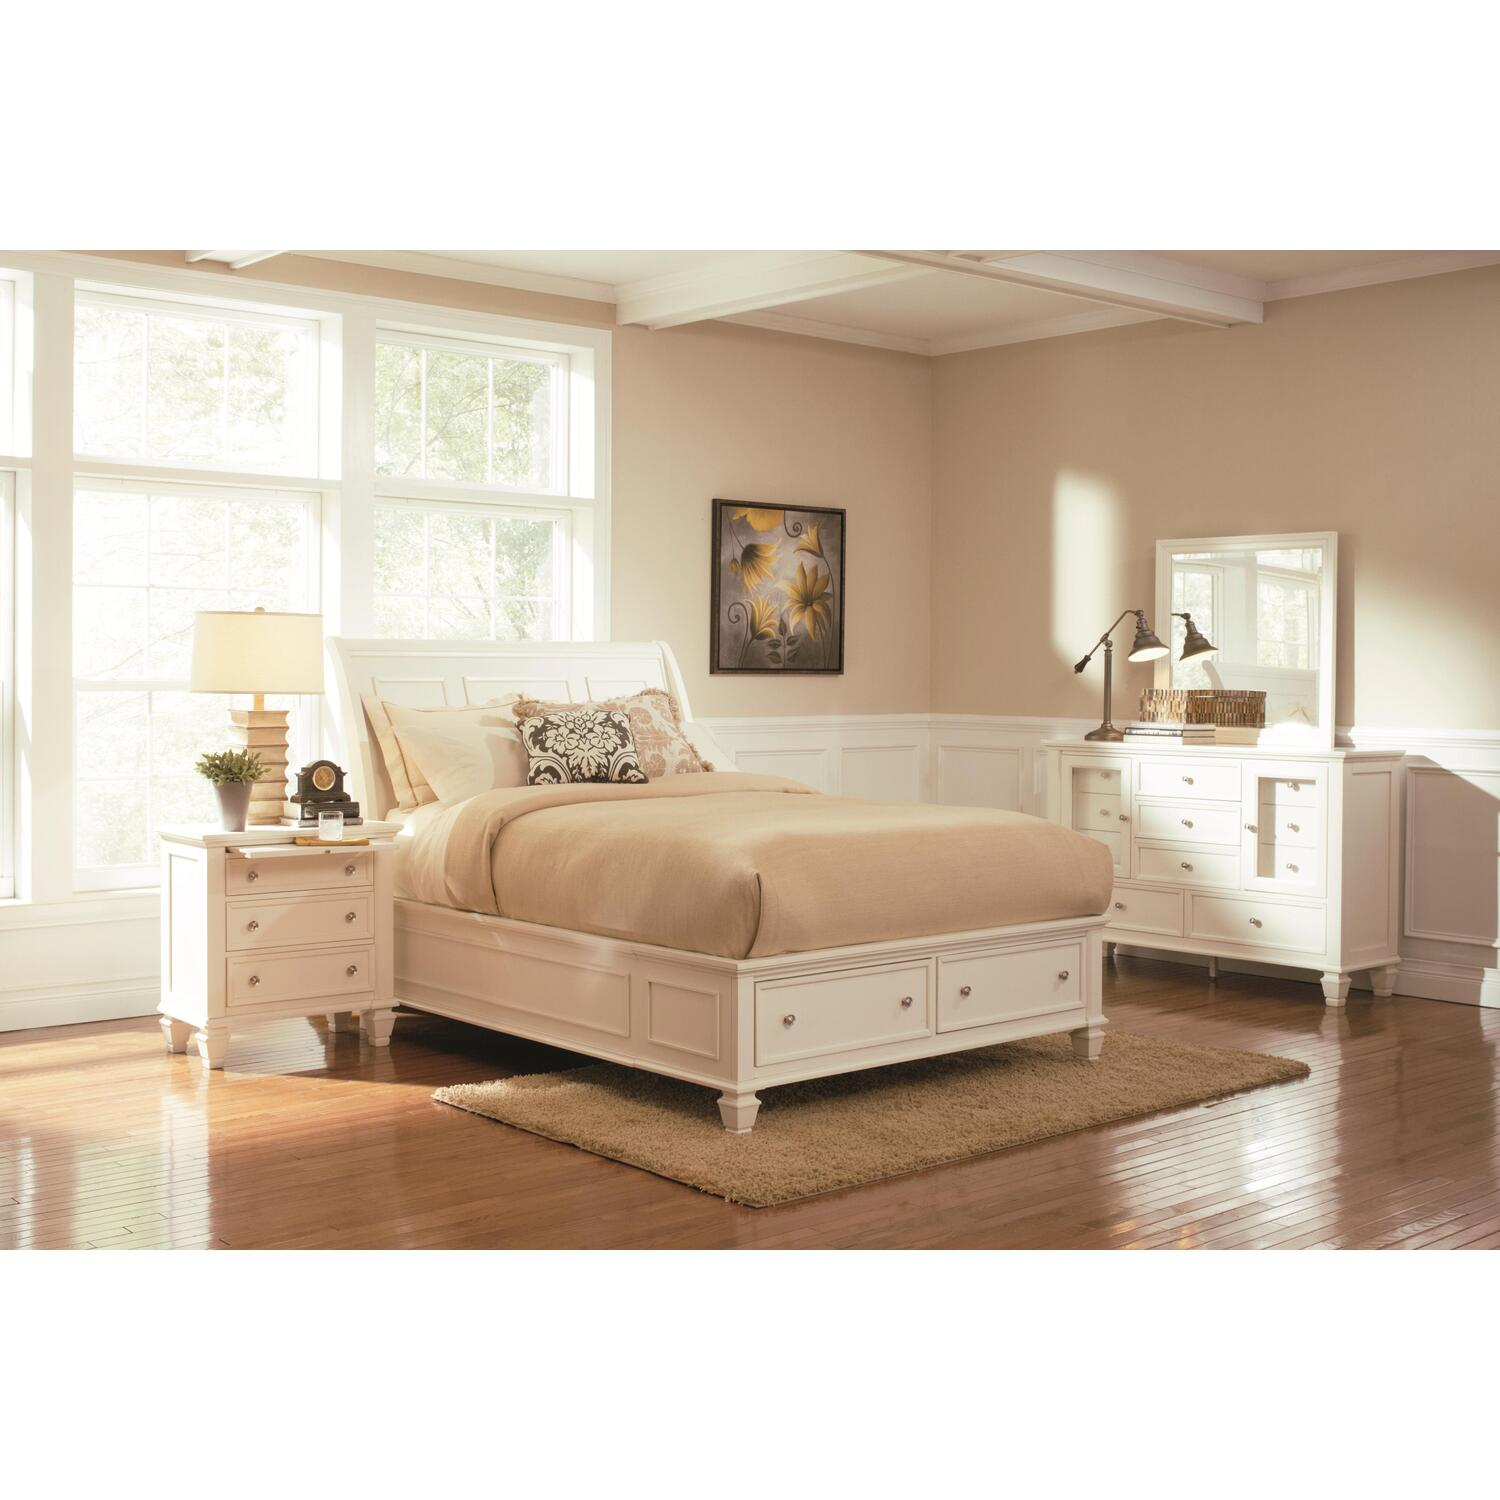 hollywood home sandy beach 4 piece bedroom set by oj commerce 3